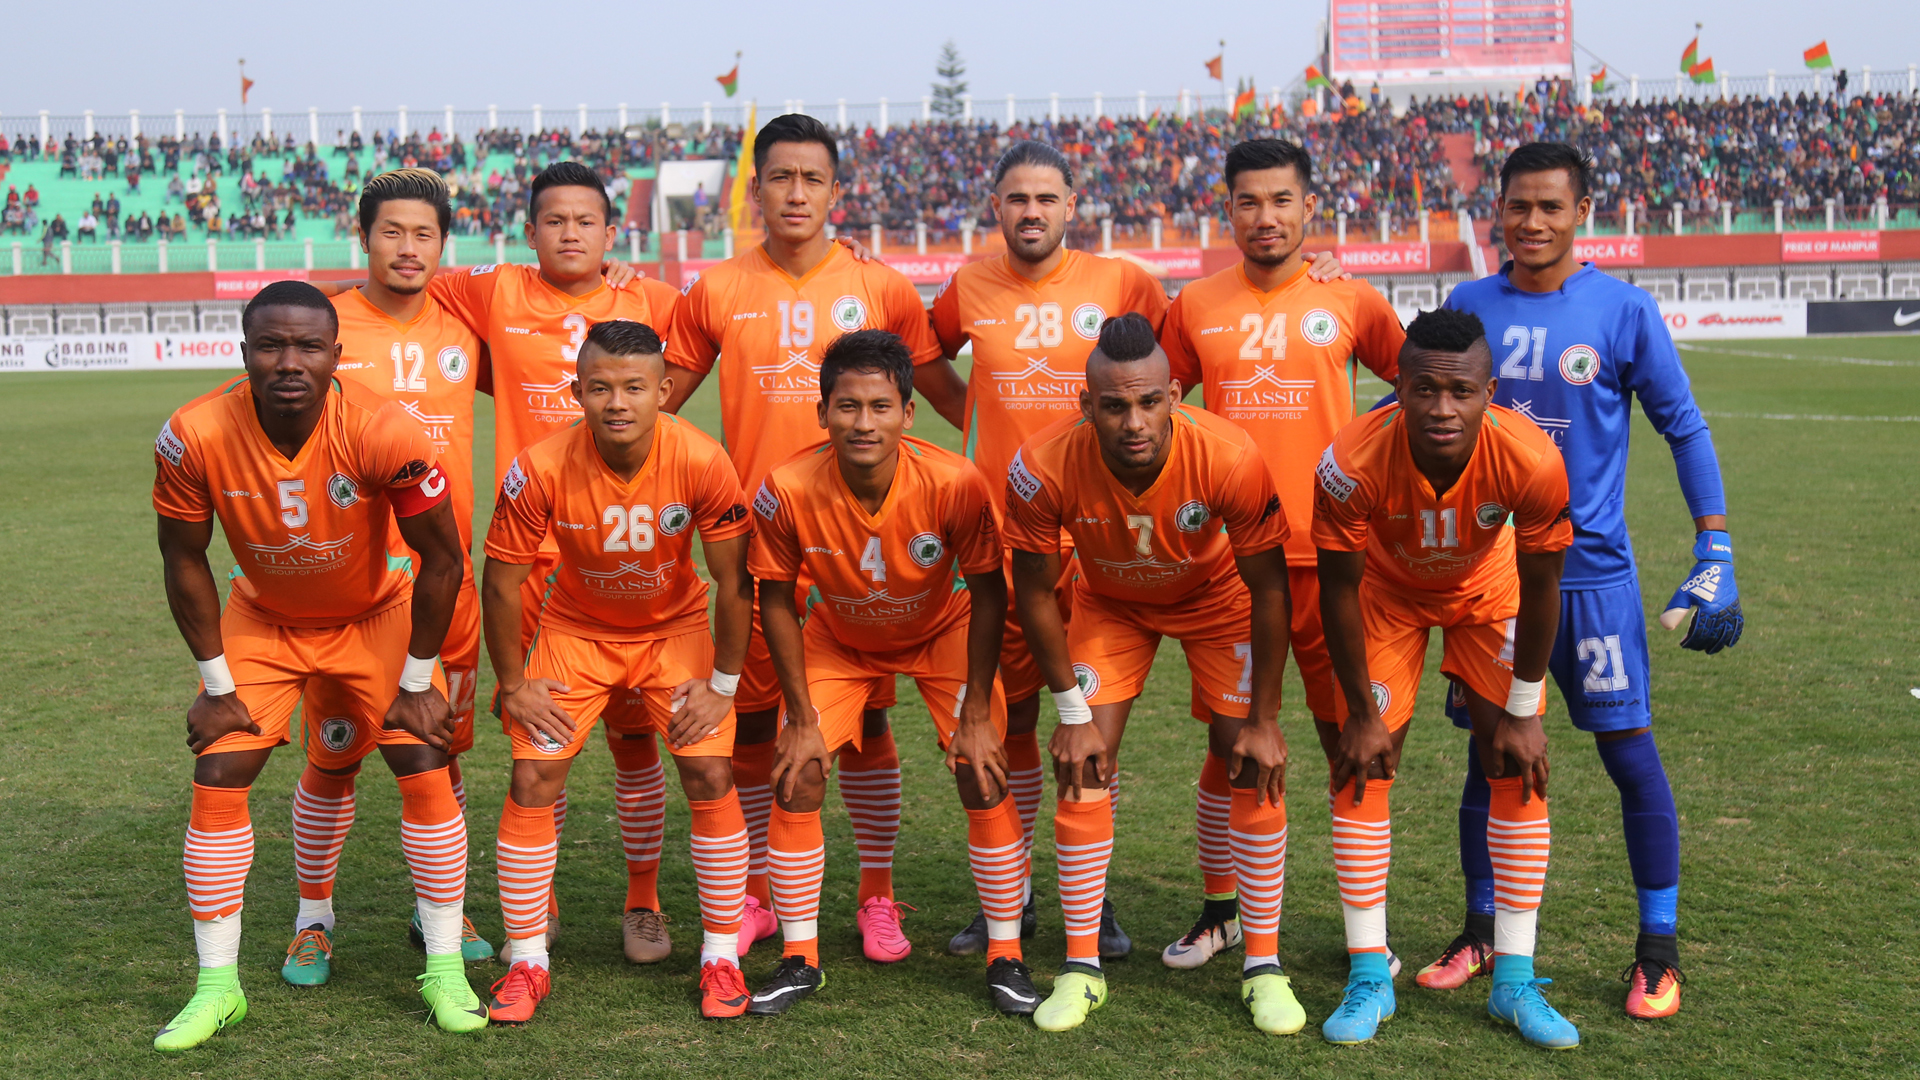 NEROCA FC I-League 2017/2018